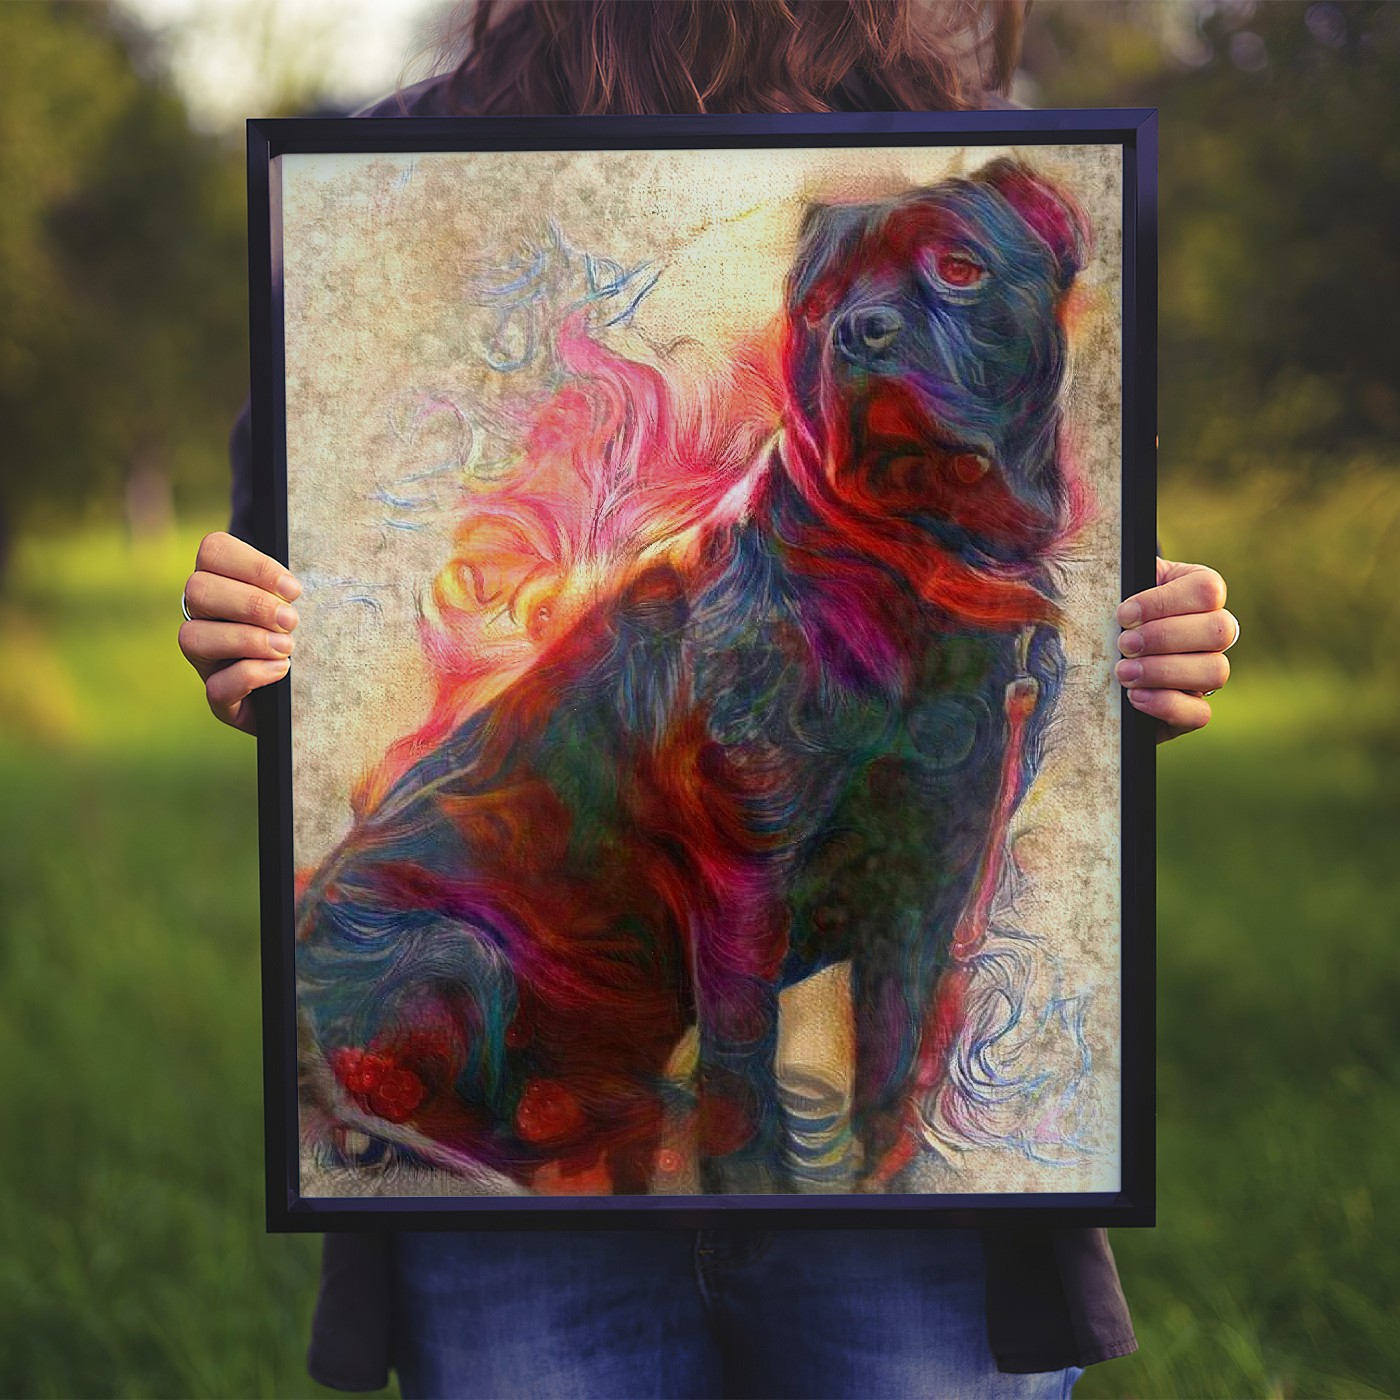 Illumination - Museum-worthy pet portraits - poster, framed or canvas